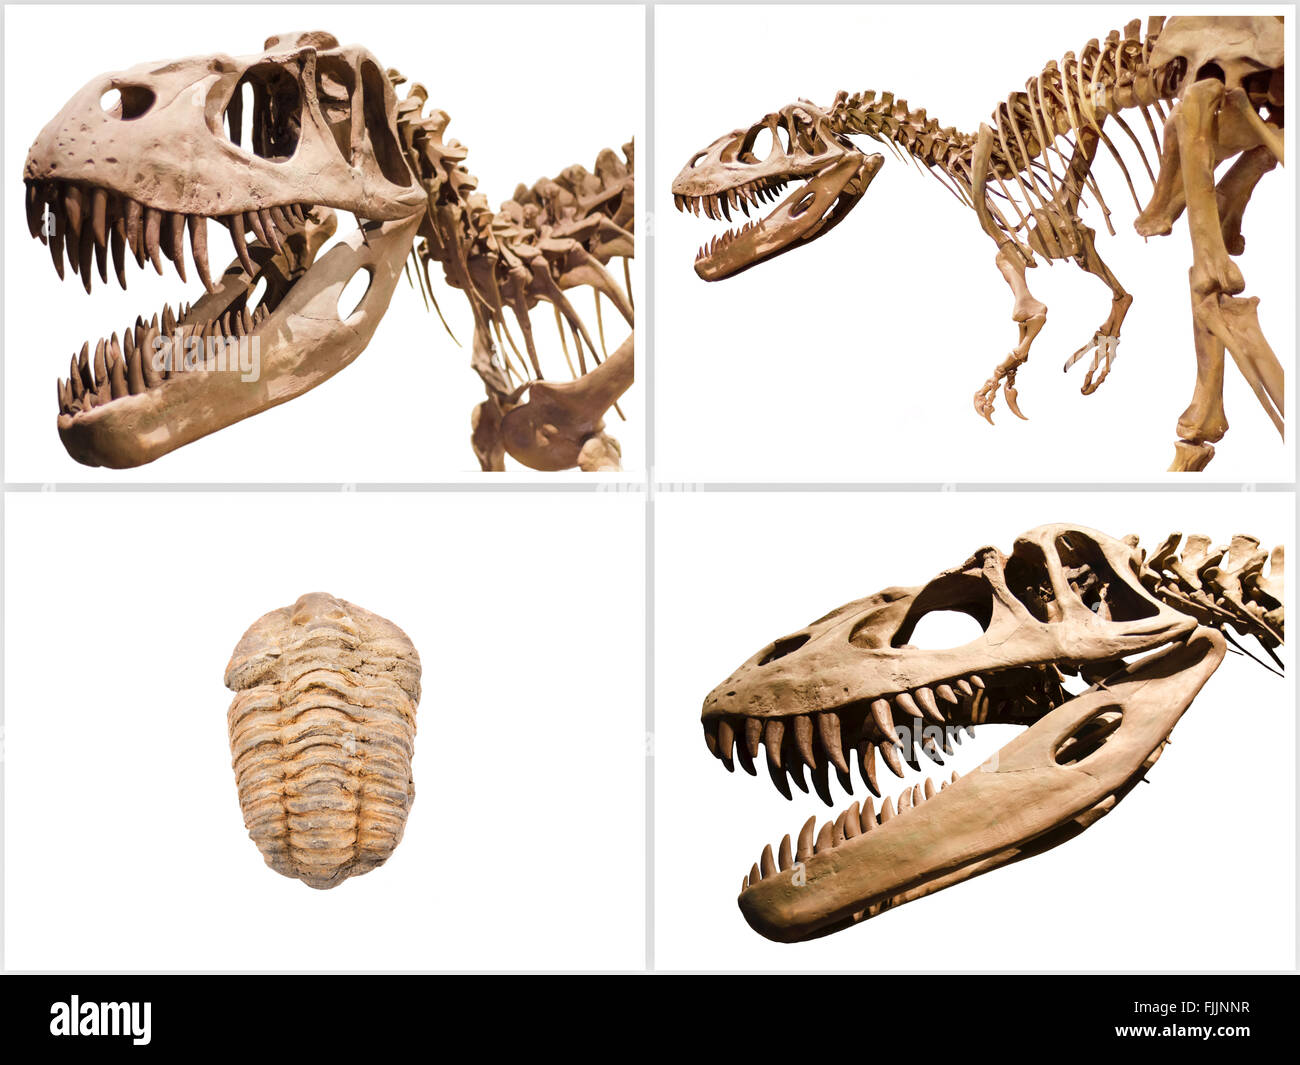 Set of dinosaurs skeleton and trilobites fossil, on white isolated background. - Stock Image